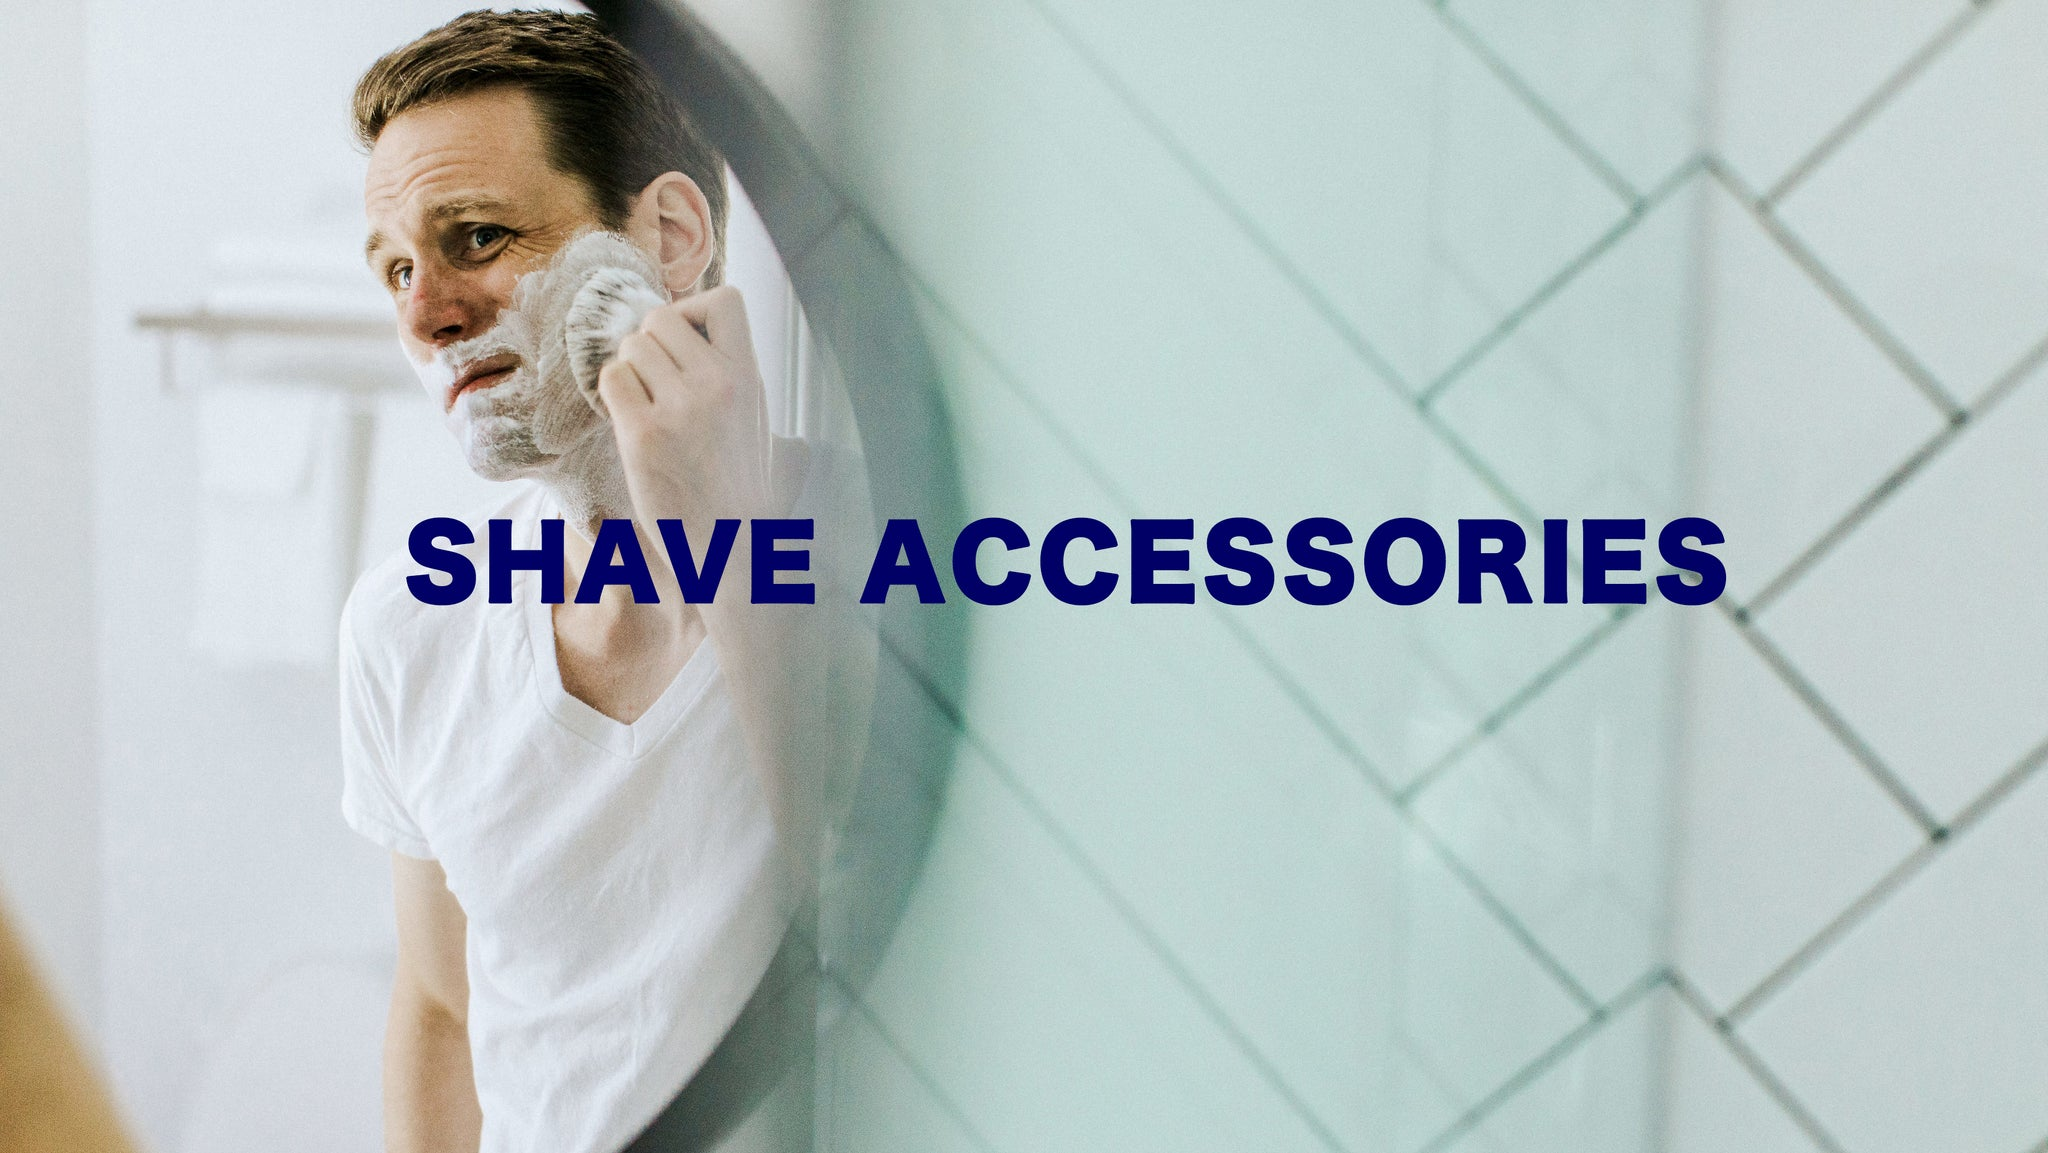 SHAVE ACCESSORIES AT CONSIGLIERE